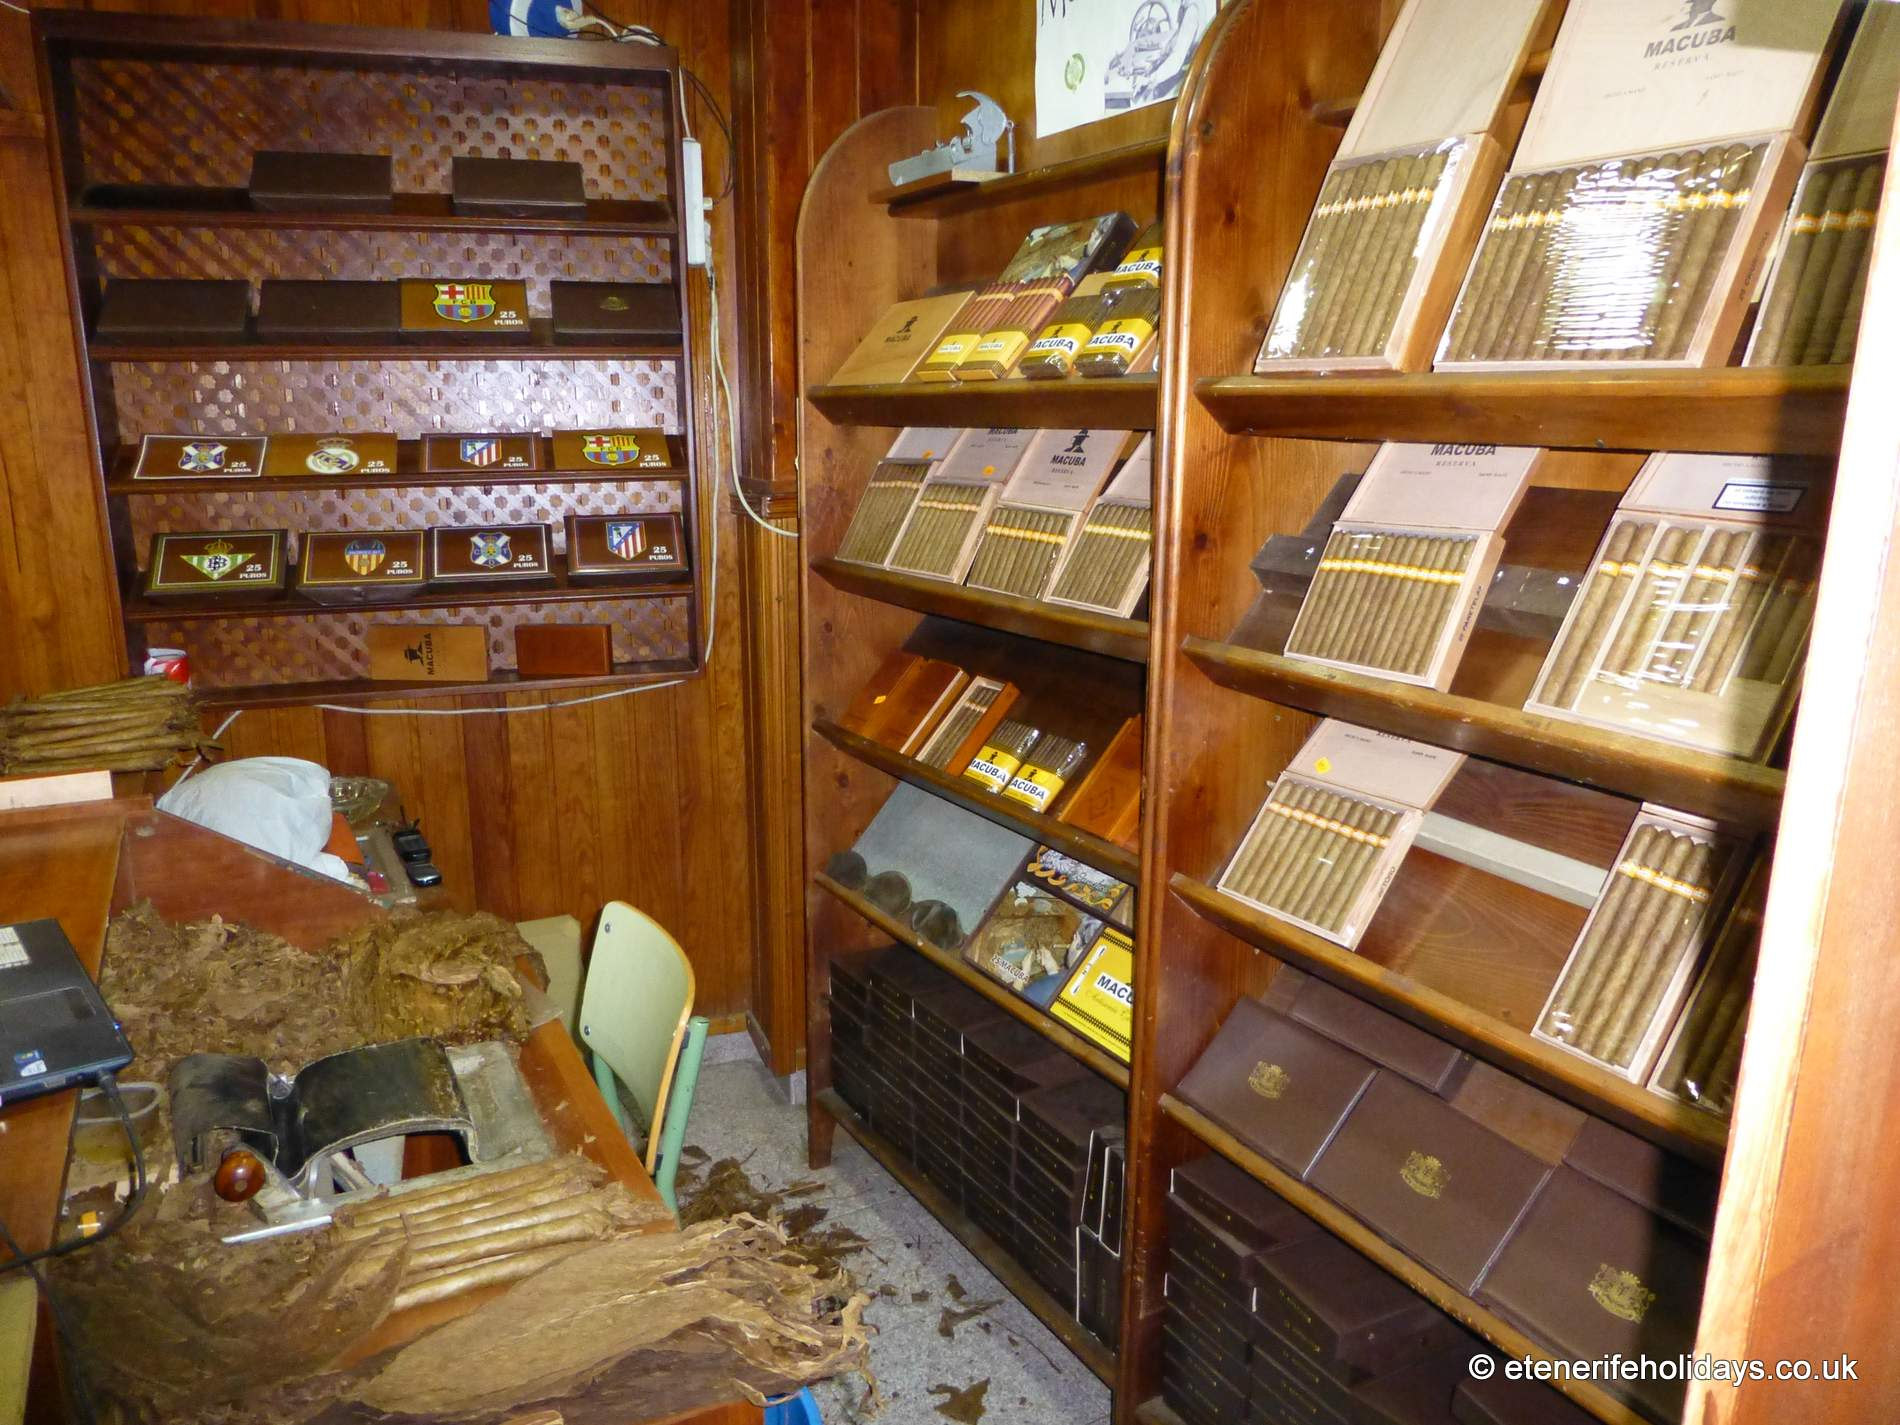 Tenerife Cigars and its History